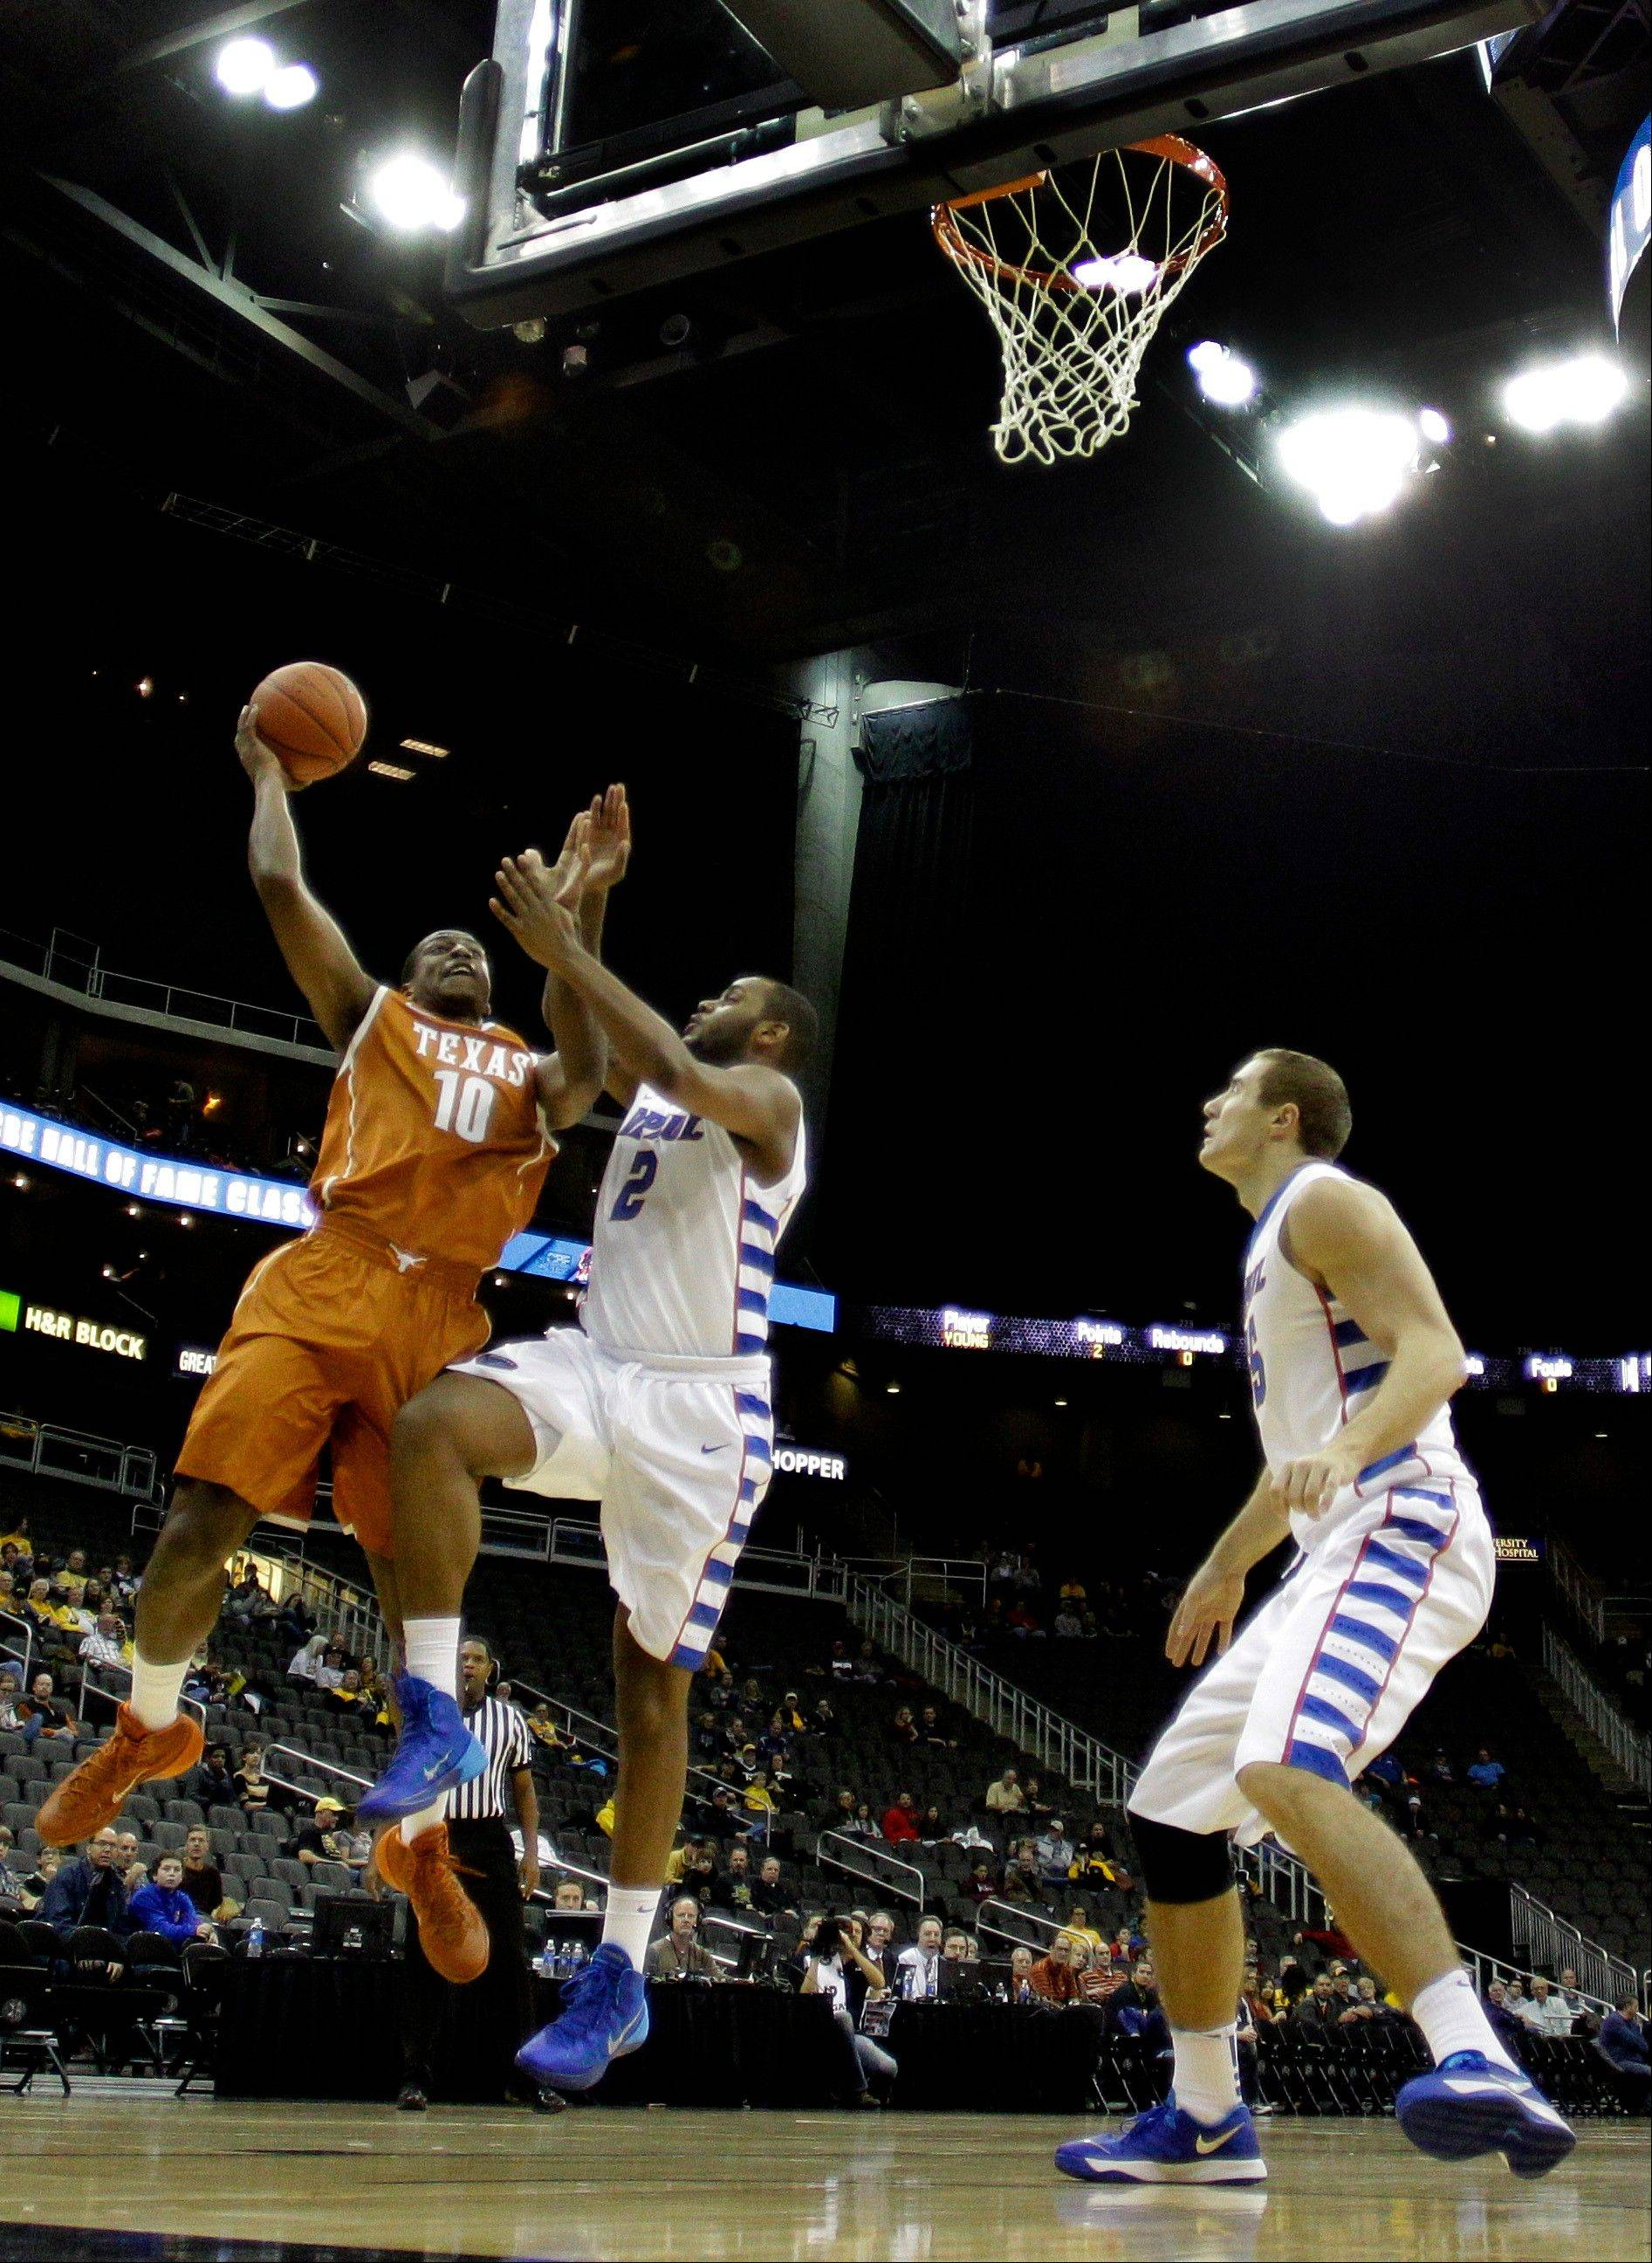 Texas' Jonathan Holmes (10) gets past DePaul's Tommy Hamilton IV (2) to put up a shot during the first half of an NCAA college basketball game Tuesday, Nov. 26, 2013, in Kansas City, Mo.